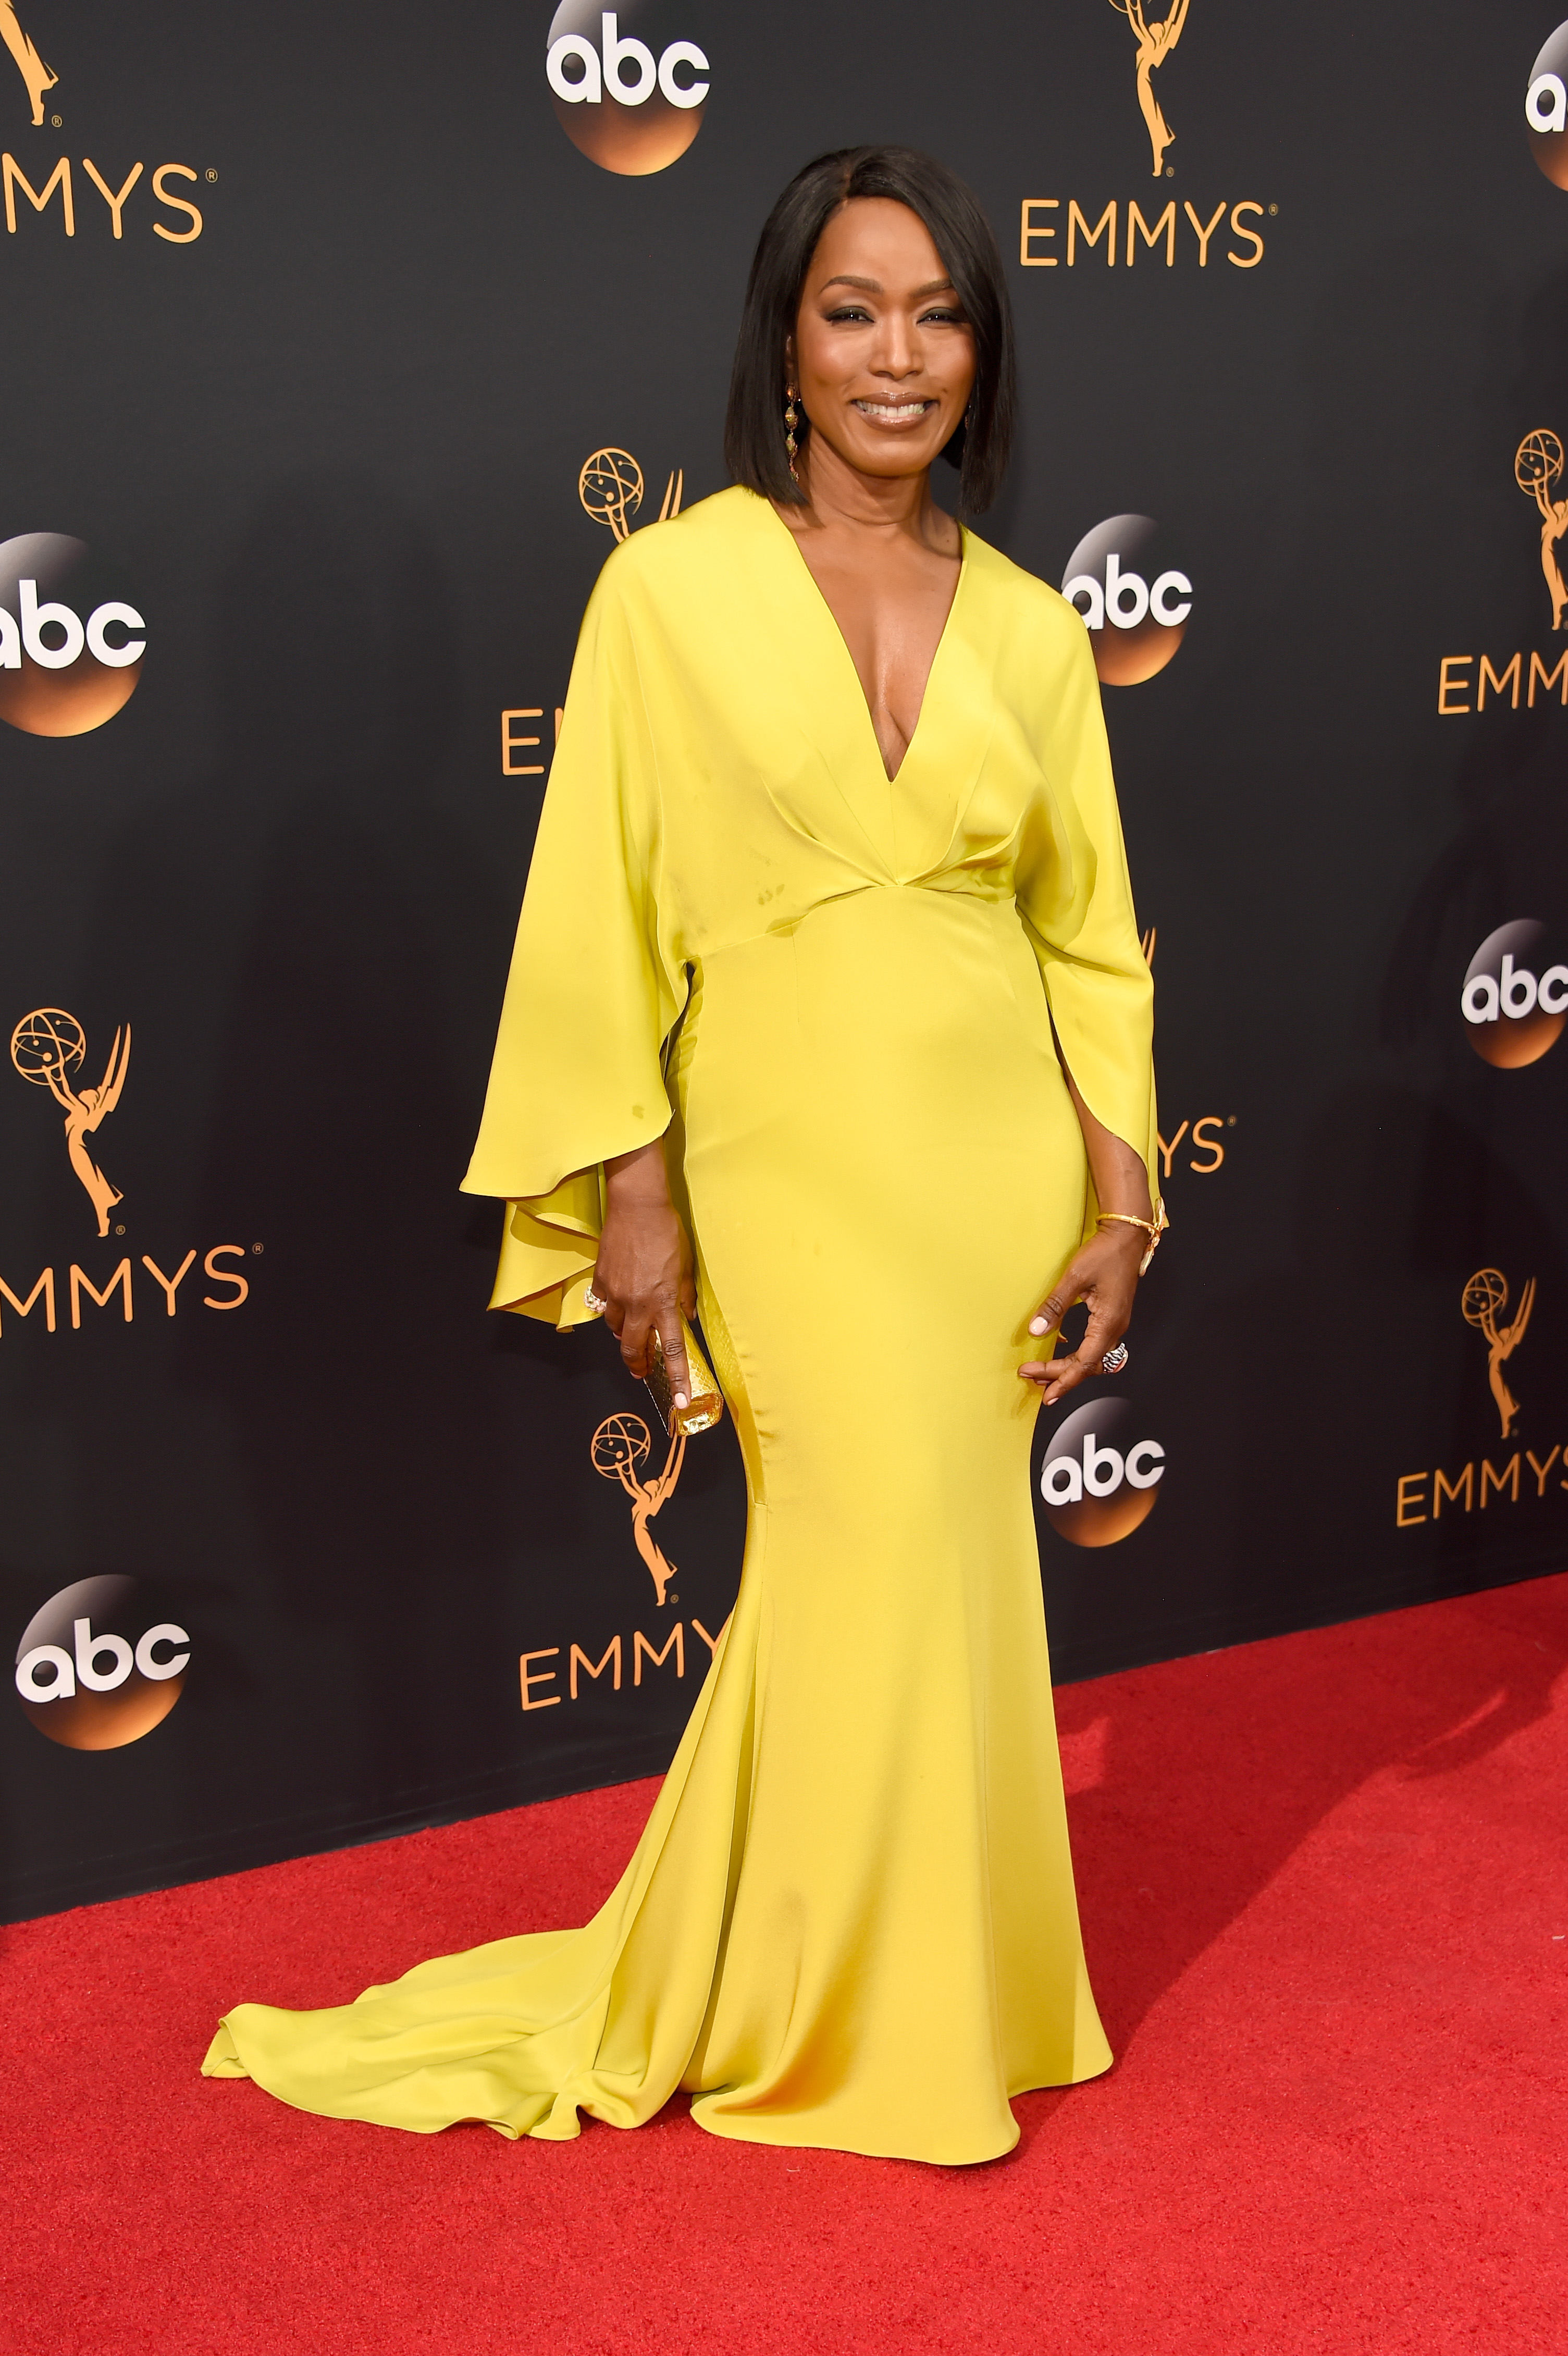 Angela Bassett arrives at the 68th Annual Primetime Emmy Awards at Microsoft Theater on Sept. 18, 2016 in Los Angeles.